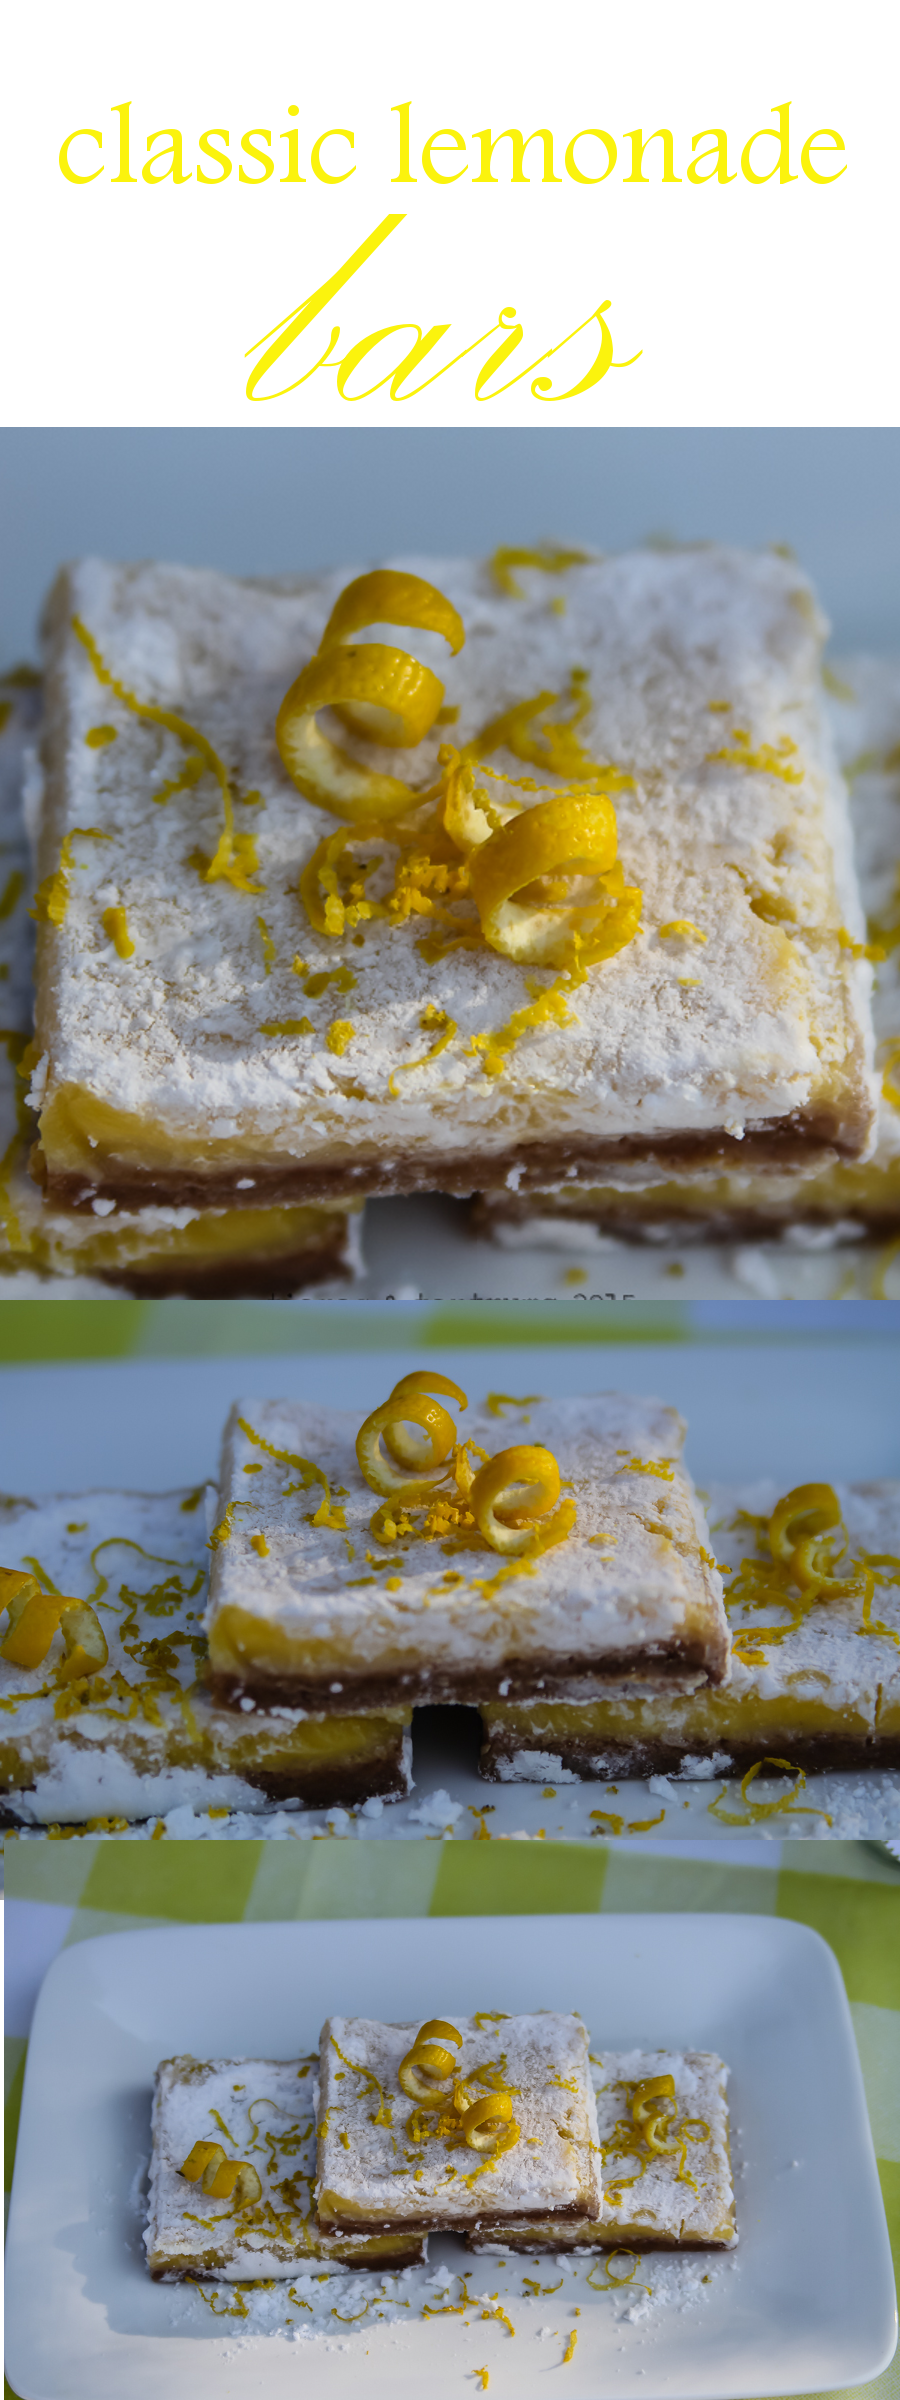 Classic Lemonade Bars Recipe